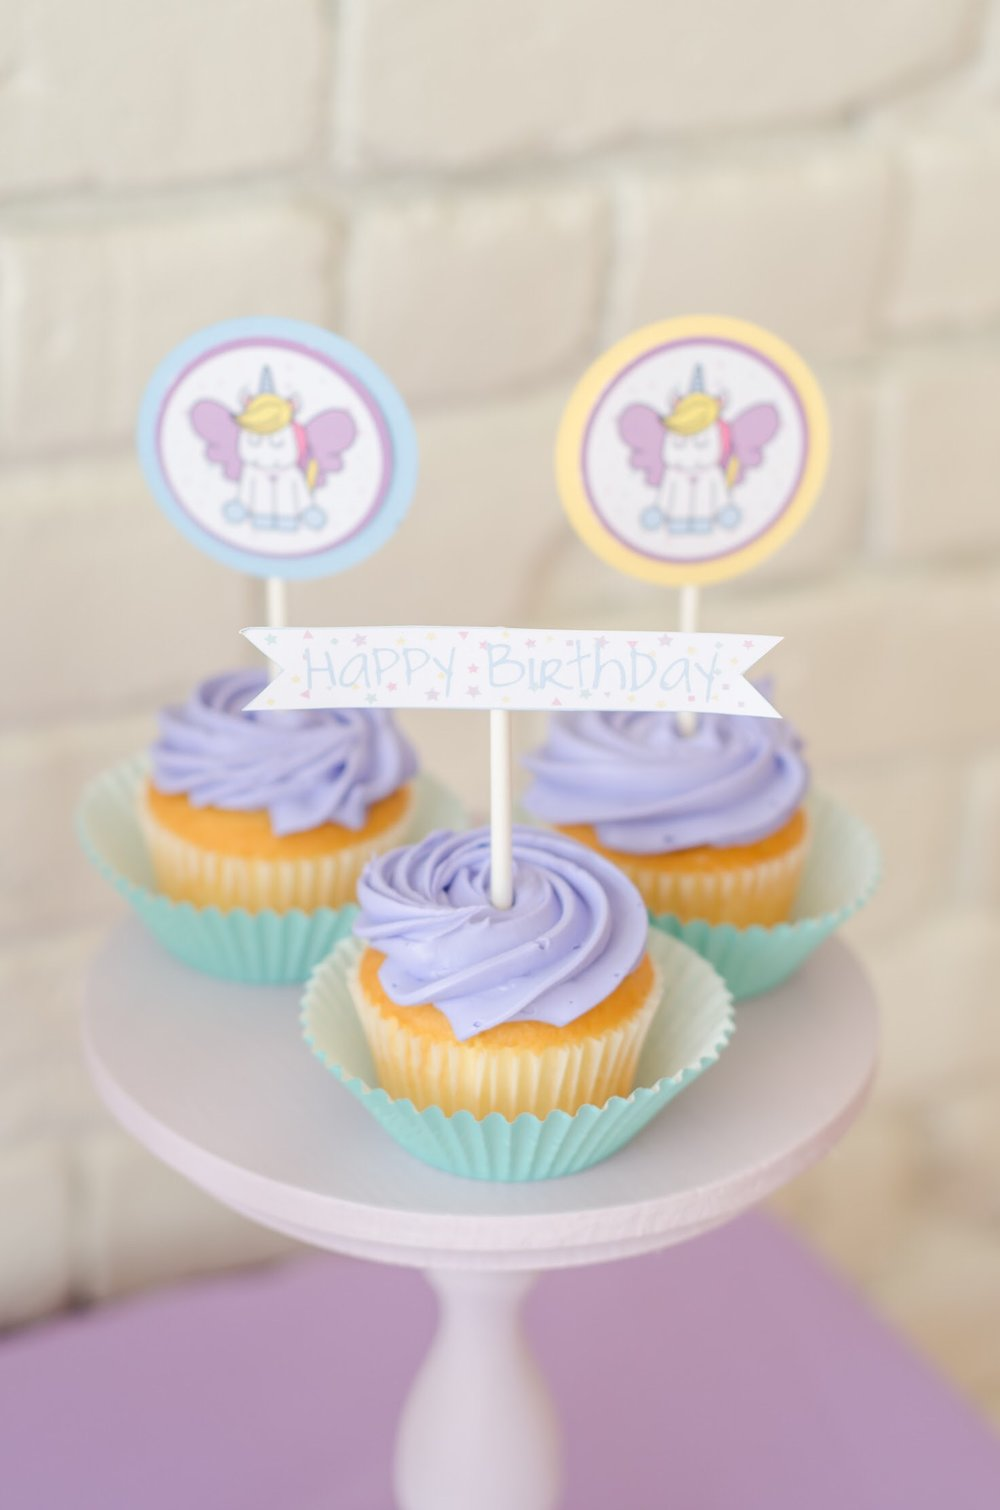 Cute cupcakes with free printable dessert toppers from Mint Event Design www.minteventdesign.com #unicornparty #birthdayparty #birthdaypartyideas #pastelrainbow #birthdaycupcakes #cupcaketoppers